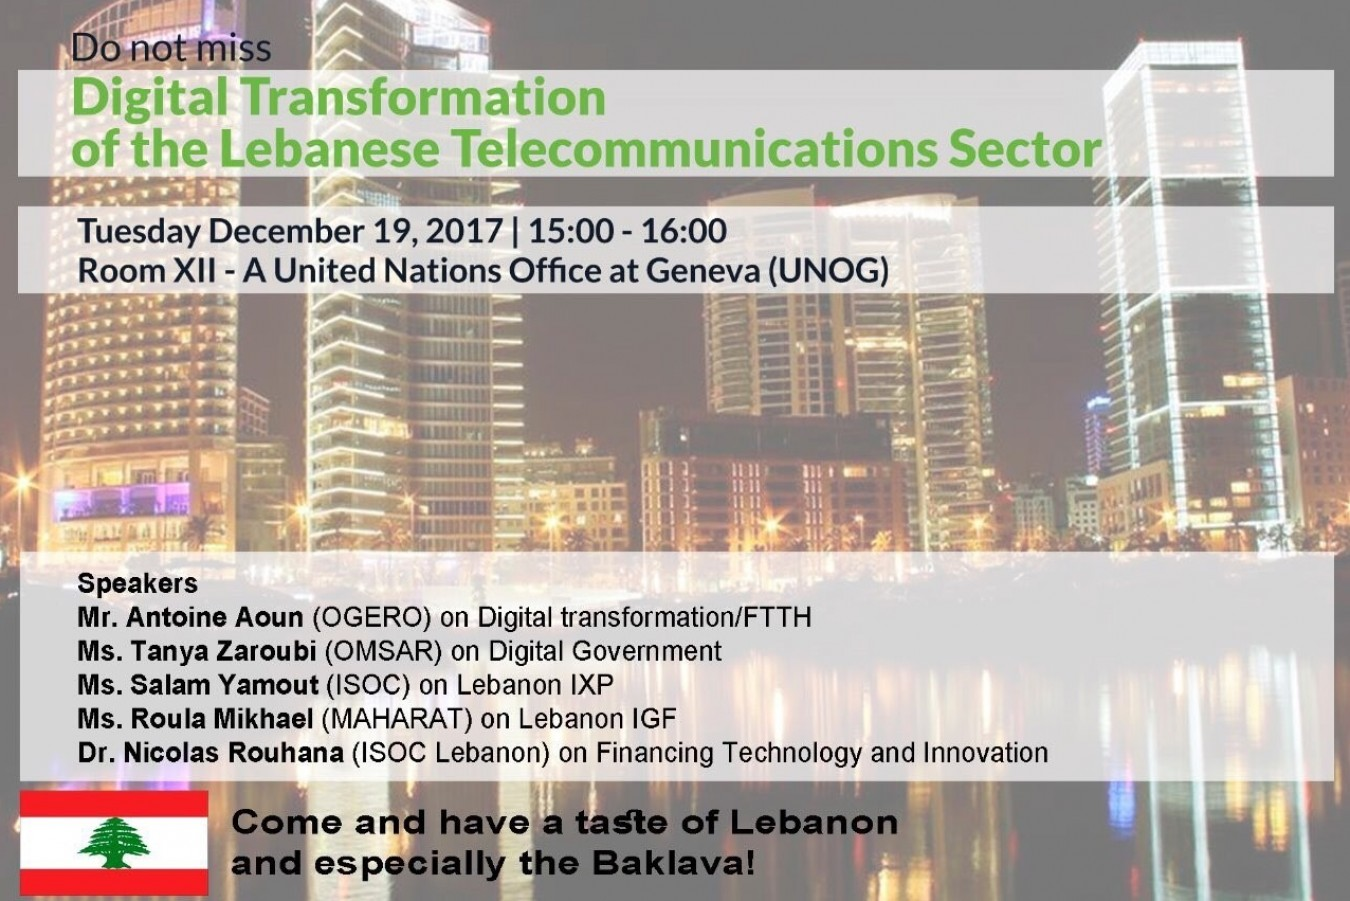 Digital Transformation of the Lebanese Telecommunications Sector